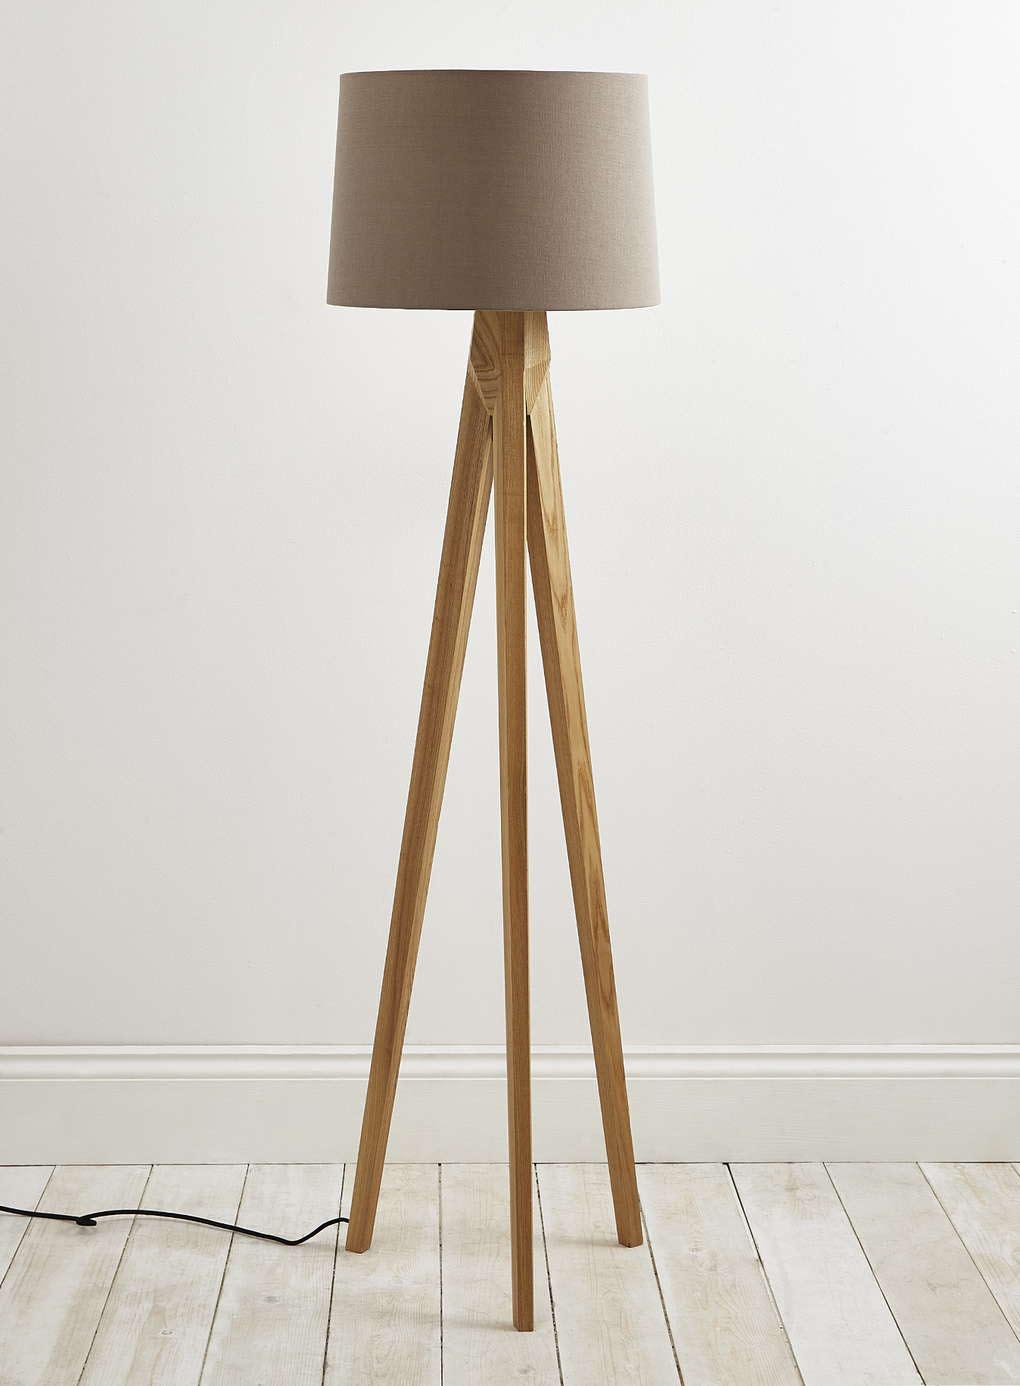 tripod floor lamp wooden legs light fixtures design ideas With floor lamp wooden legs